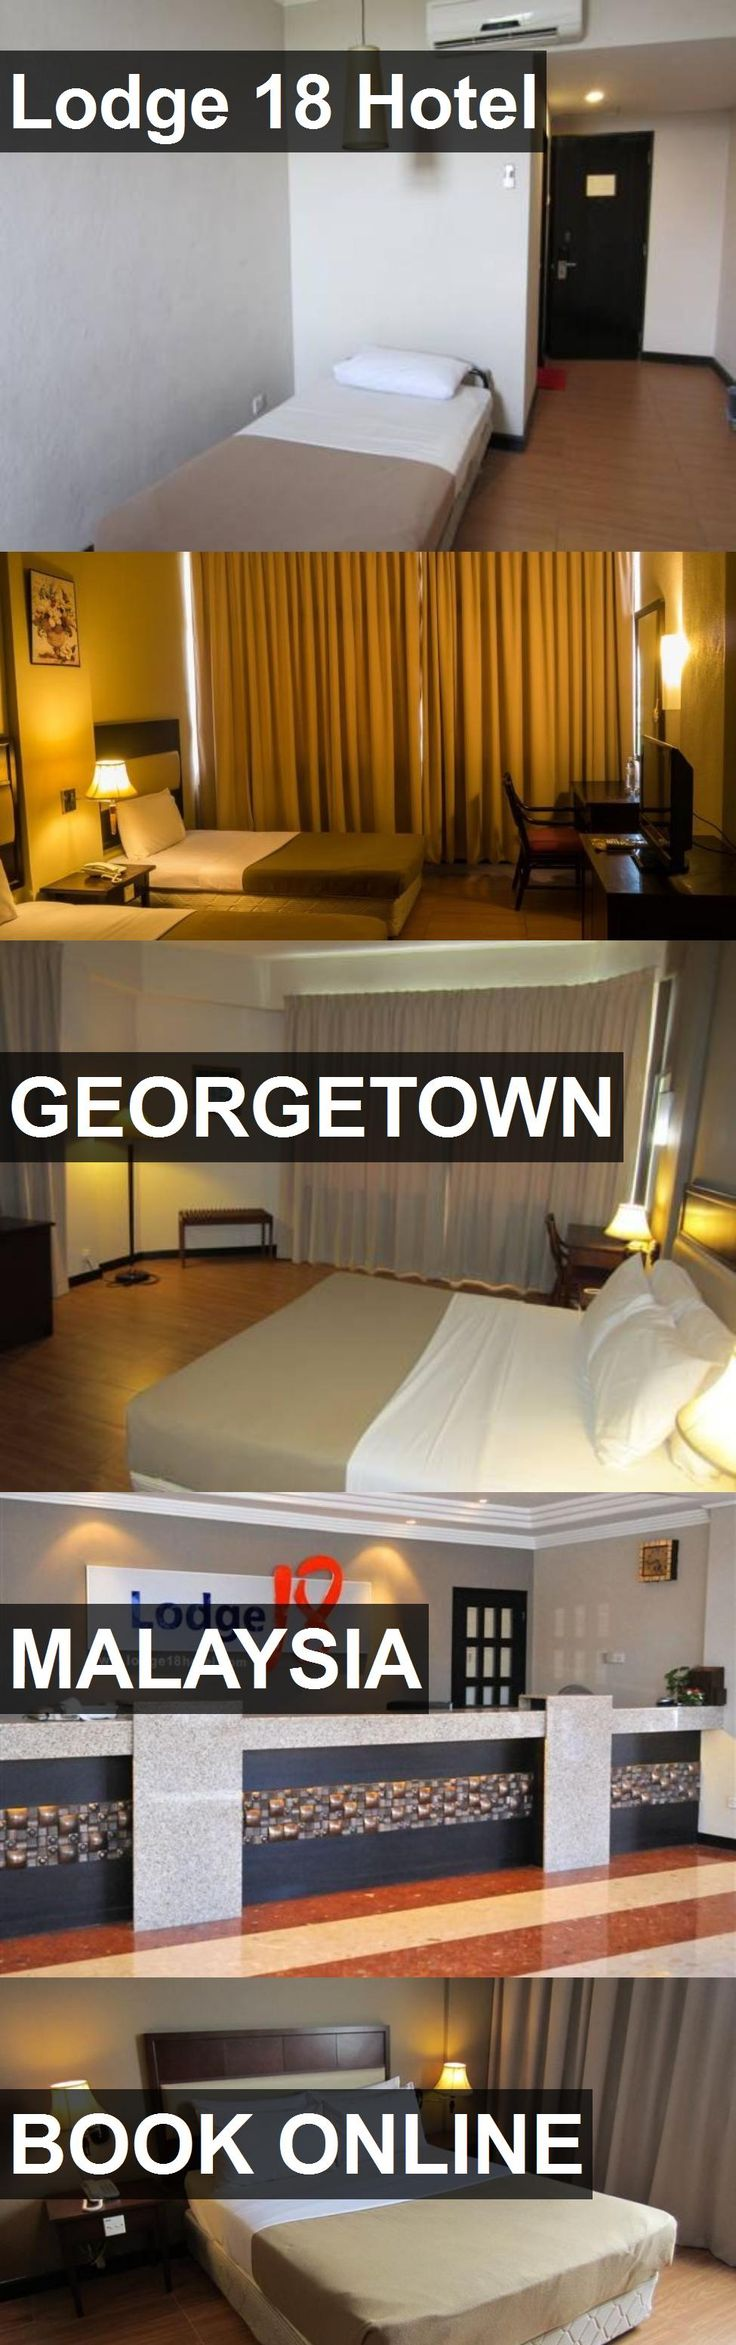 Hotel Lodge 18 Hotel in Georgetown, Malaysia. For more information, photos, reviews and best prices please follow the link. #Malaysia #Georgetown #hotel #travel #vacation